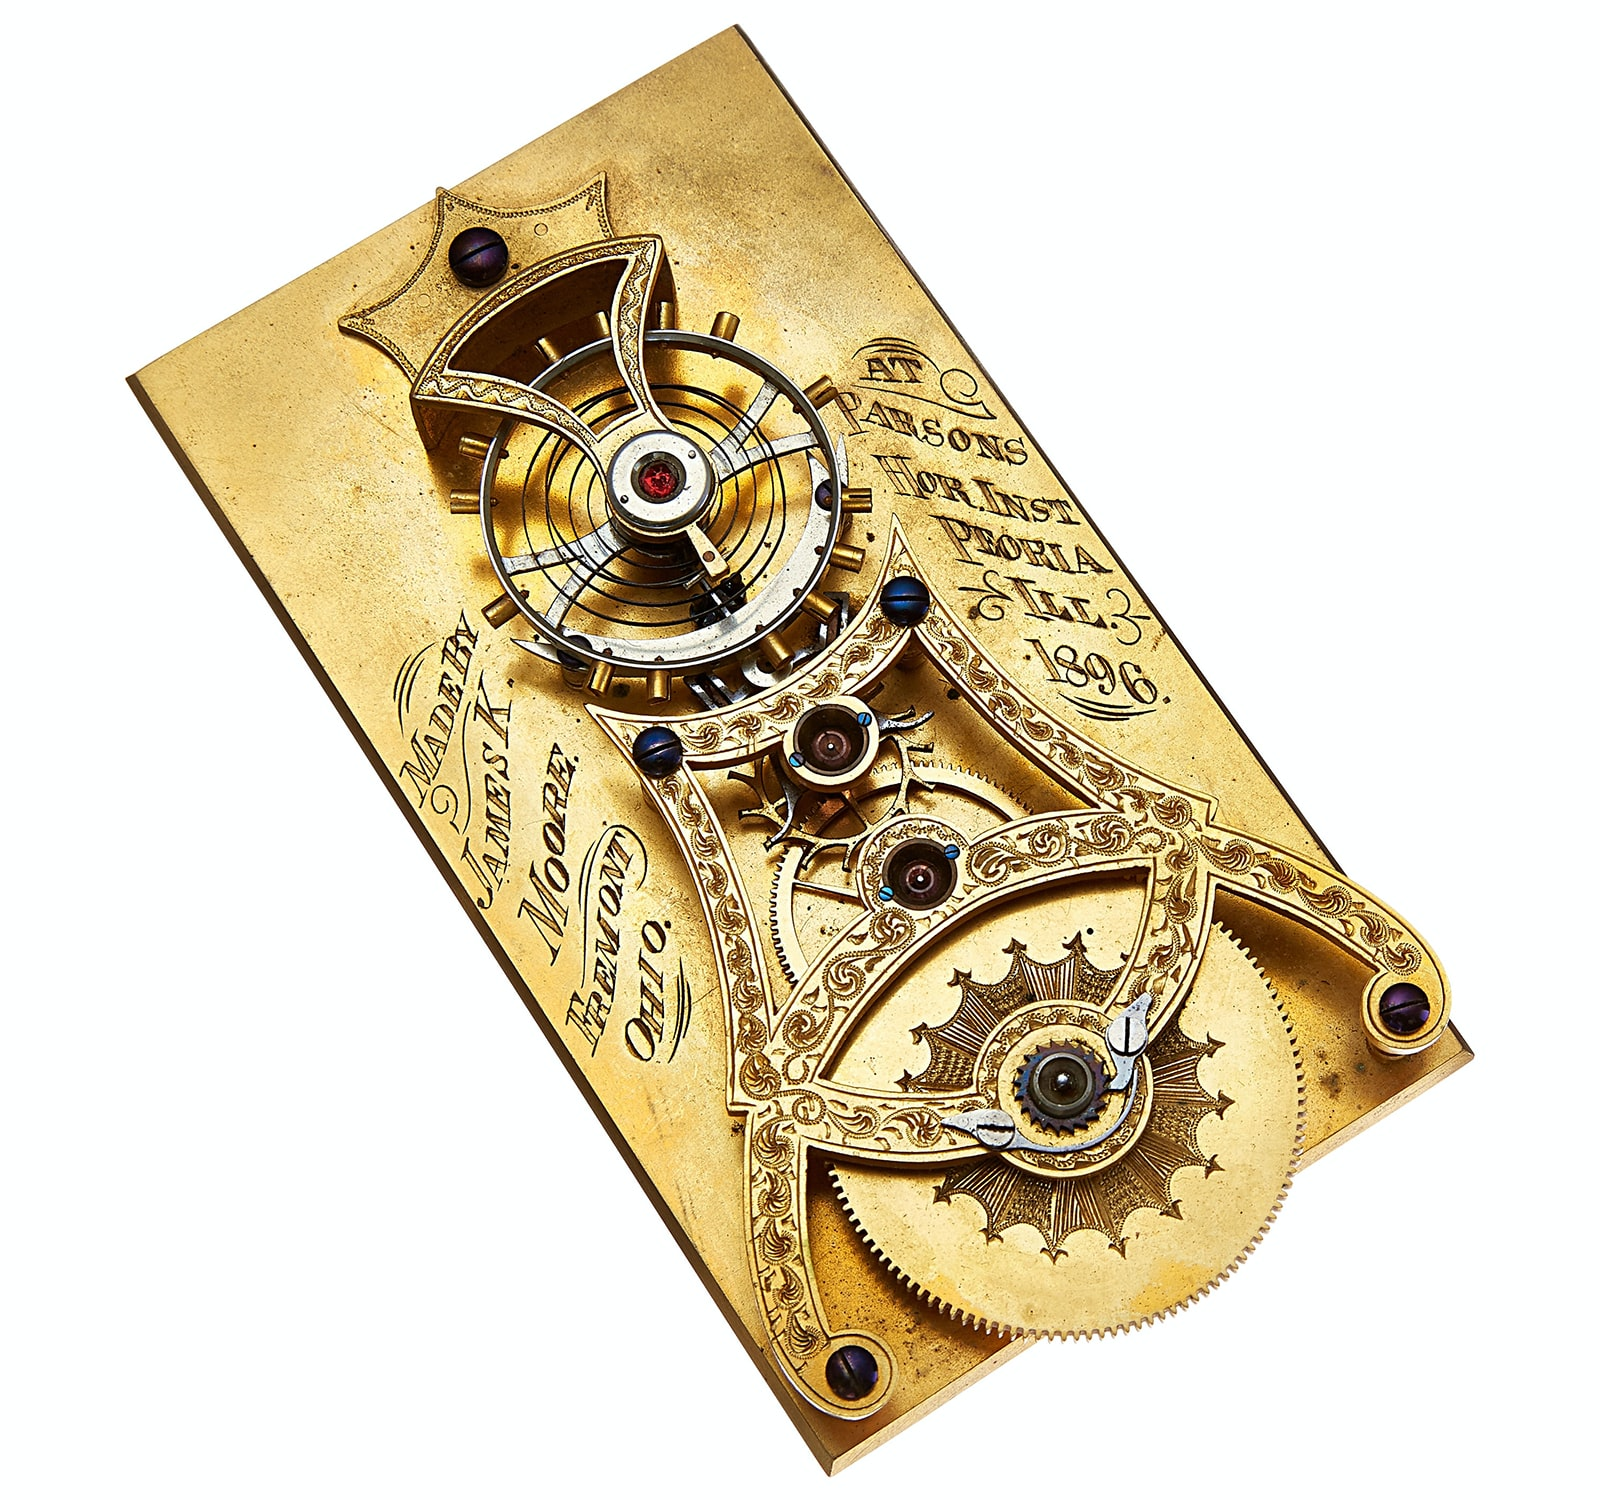 Albert Meyer Spring Detent Chronometer Escapement Model Found: A Captivating Collection Of Escapement Models At Heritage Auction's May 26th Sale Found: A Captivating Collection Of Escapement Models At Heritage Auction's May 26th Sale a 2